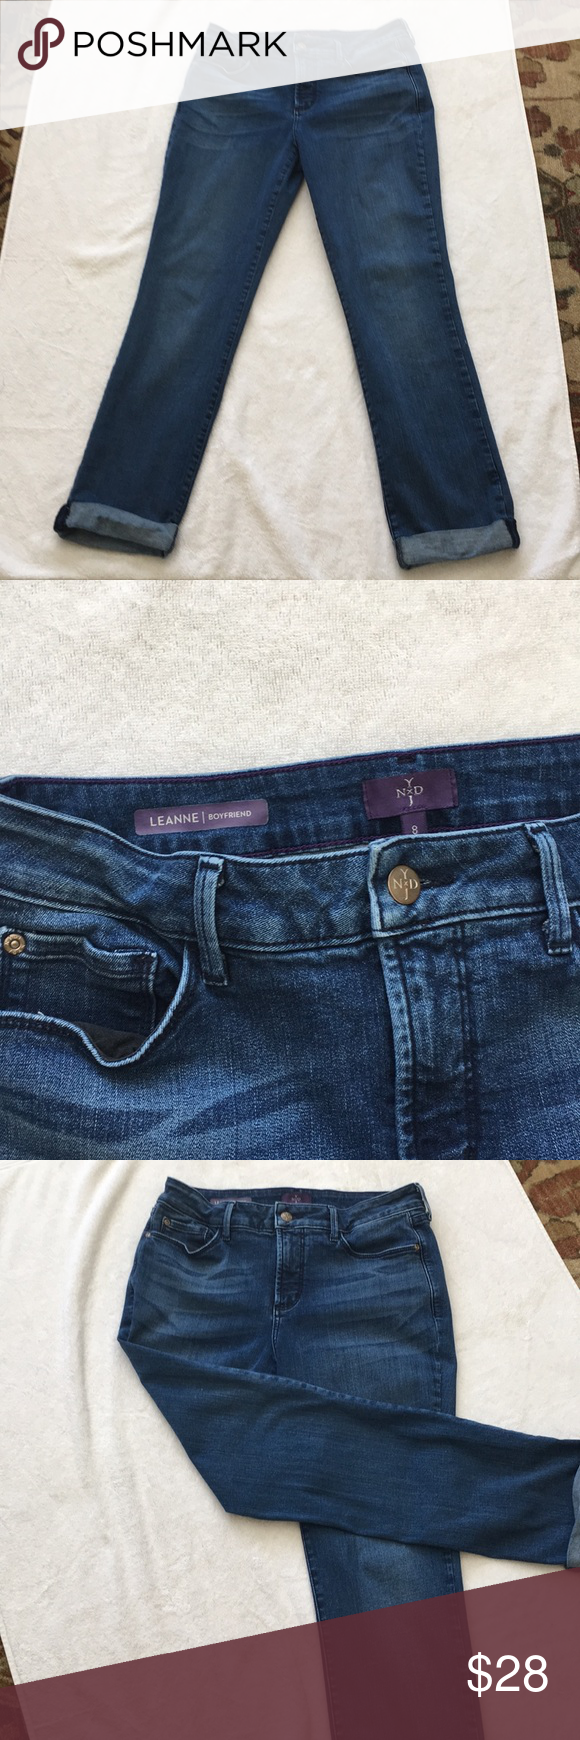 NYDJ LEANNE boyfriend 8 Jeans 5 pocket cuffed bluejeans in good condition. Soft, comfortable with Lift, Tuck Technology, measured lying flat~ Approx. 27 1/2 inseam, 15waist, 6 1/2 leg opening.  All items sold from My Closet are one person owned who tragically passed on. OK, so I'm not great at pics, but ALL clothes were well maintained and loved. You will not be disappointed with any quality issues. I do not know any of the original prices so I'm entering 0, but I know she had expensive taste #expensivetaste